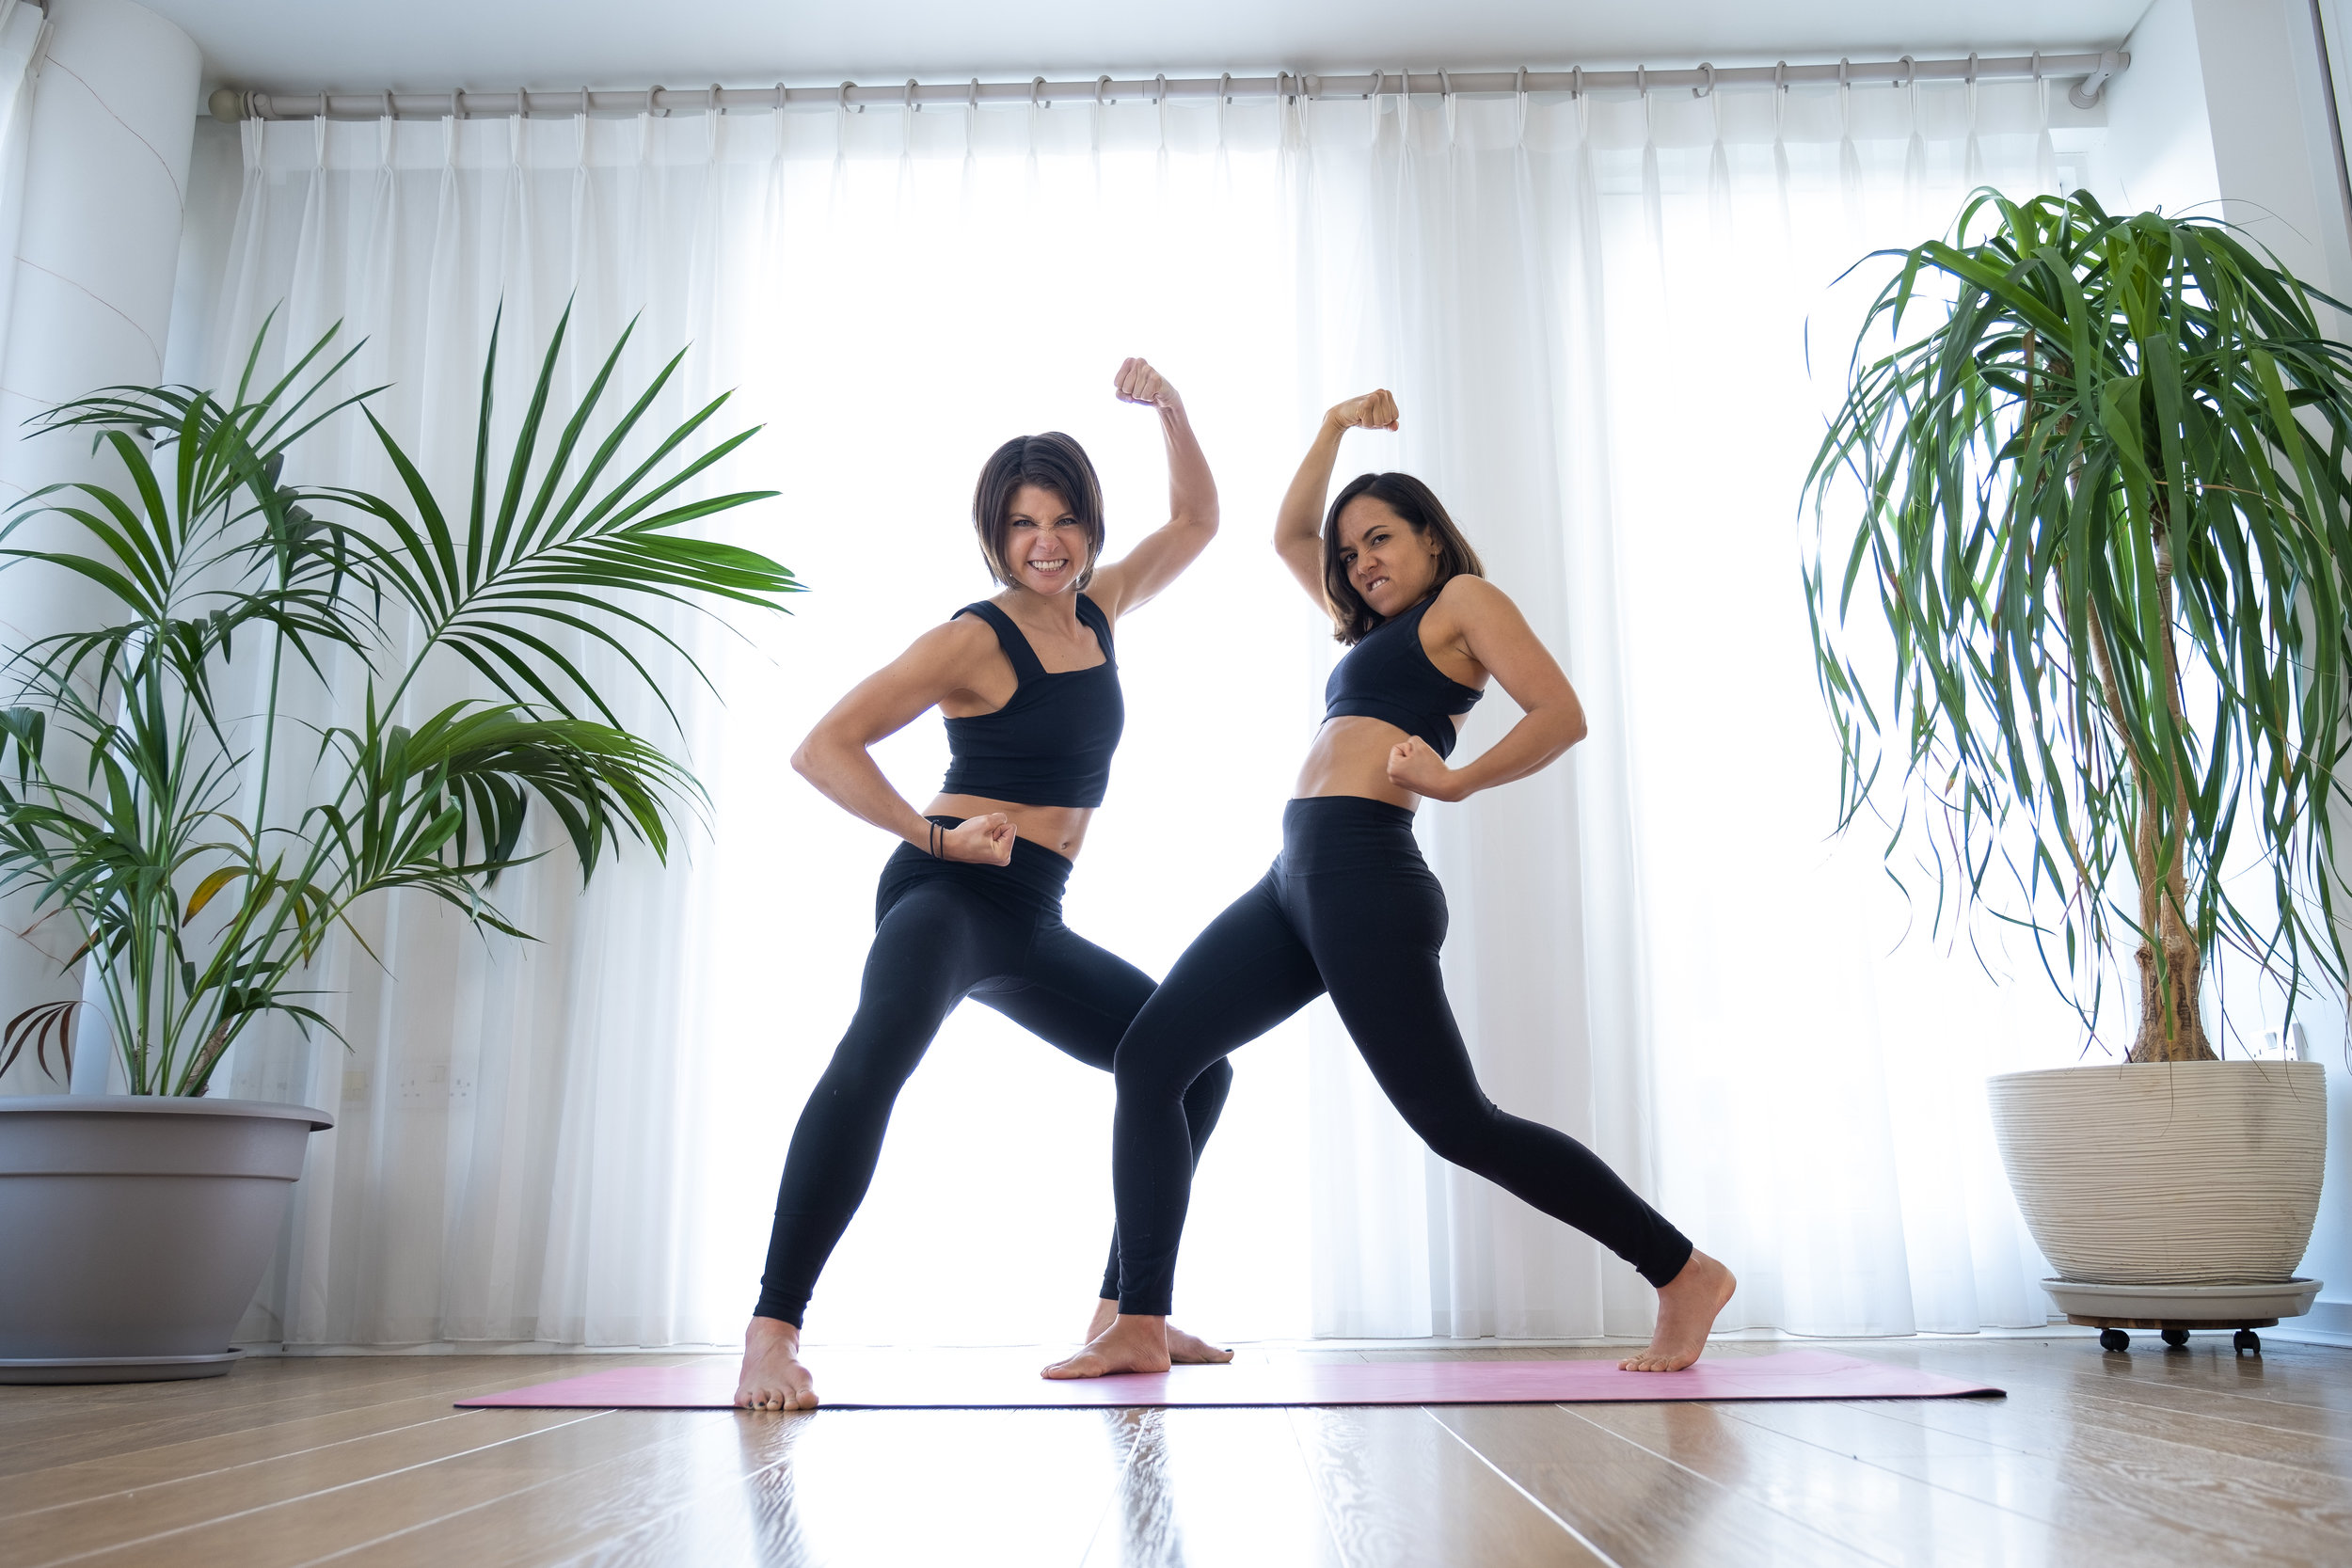 In  this course  you will have  lifetime, unlimited  access to:   28 Videos  each focusing on different areas of the body   6 hours of videos  containing both short and longer classes   33 page e-book  that delves a little deeper into the anatomy of yoga   10 PDF visual aid worksheets  to go along with the videos   The content includes biomechanics, workouts, yoga flows, meditations and educational information covering every part of your body!   It doesn't matter where you are in your practice now. By the end of this course you will understand exactly how to stabilise your joints, move safely and harness your awesomeness from unrolling your yoga mat to savasana.  To sign up click the button below!  Our introductory offer price only lasts until 31 July so BE QUICK!